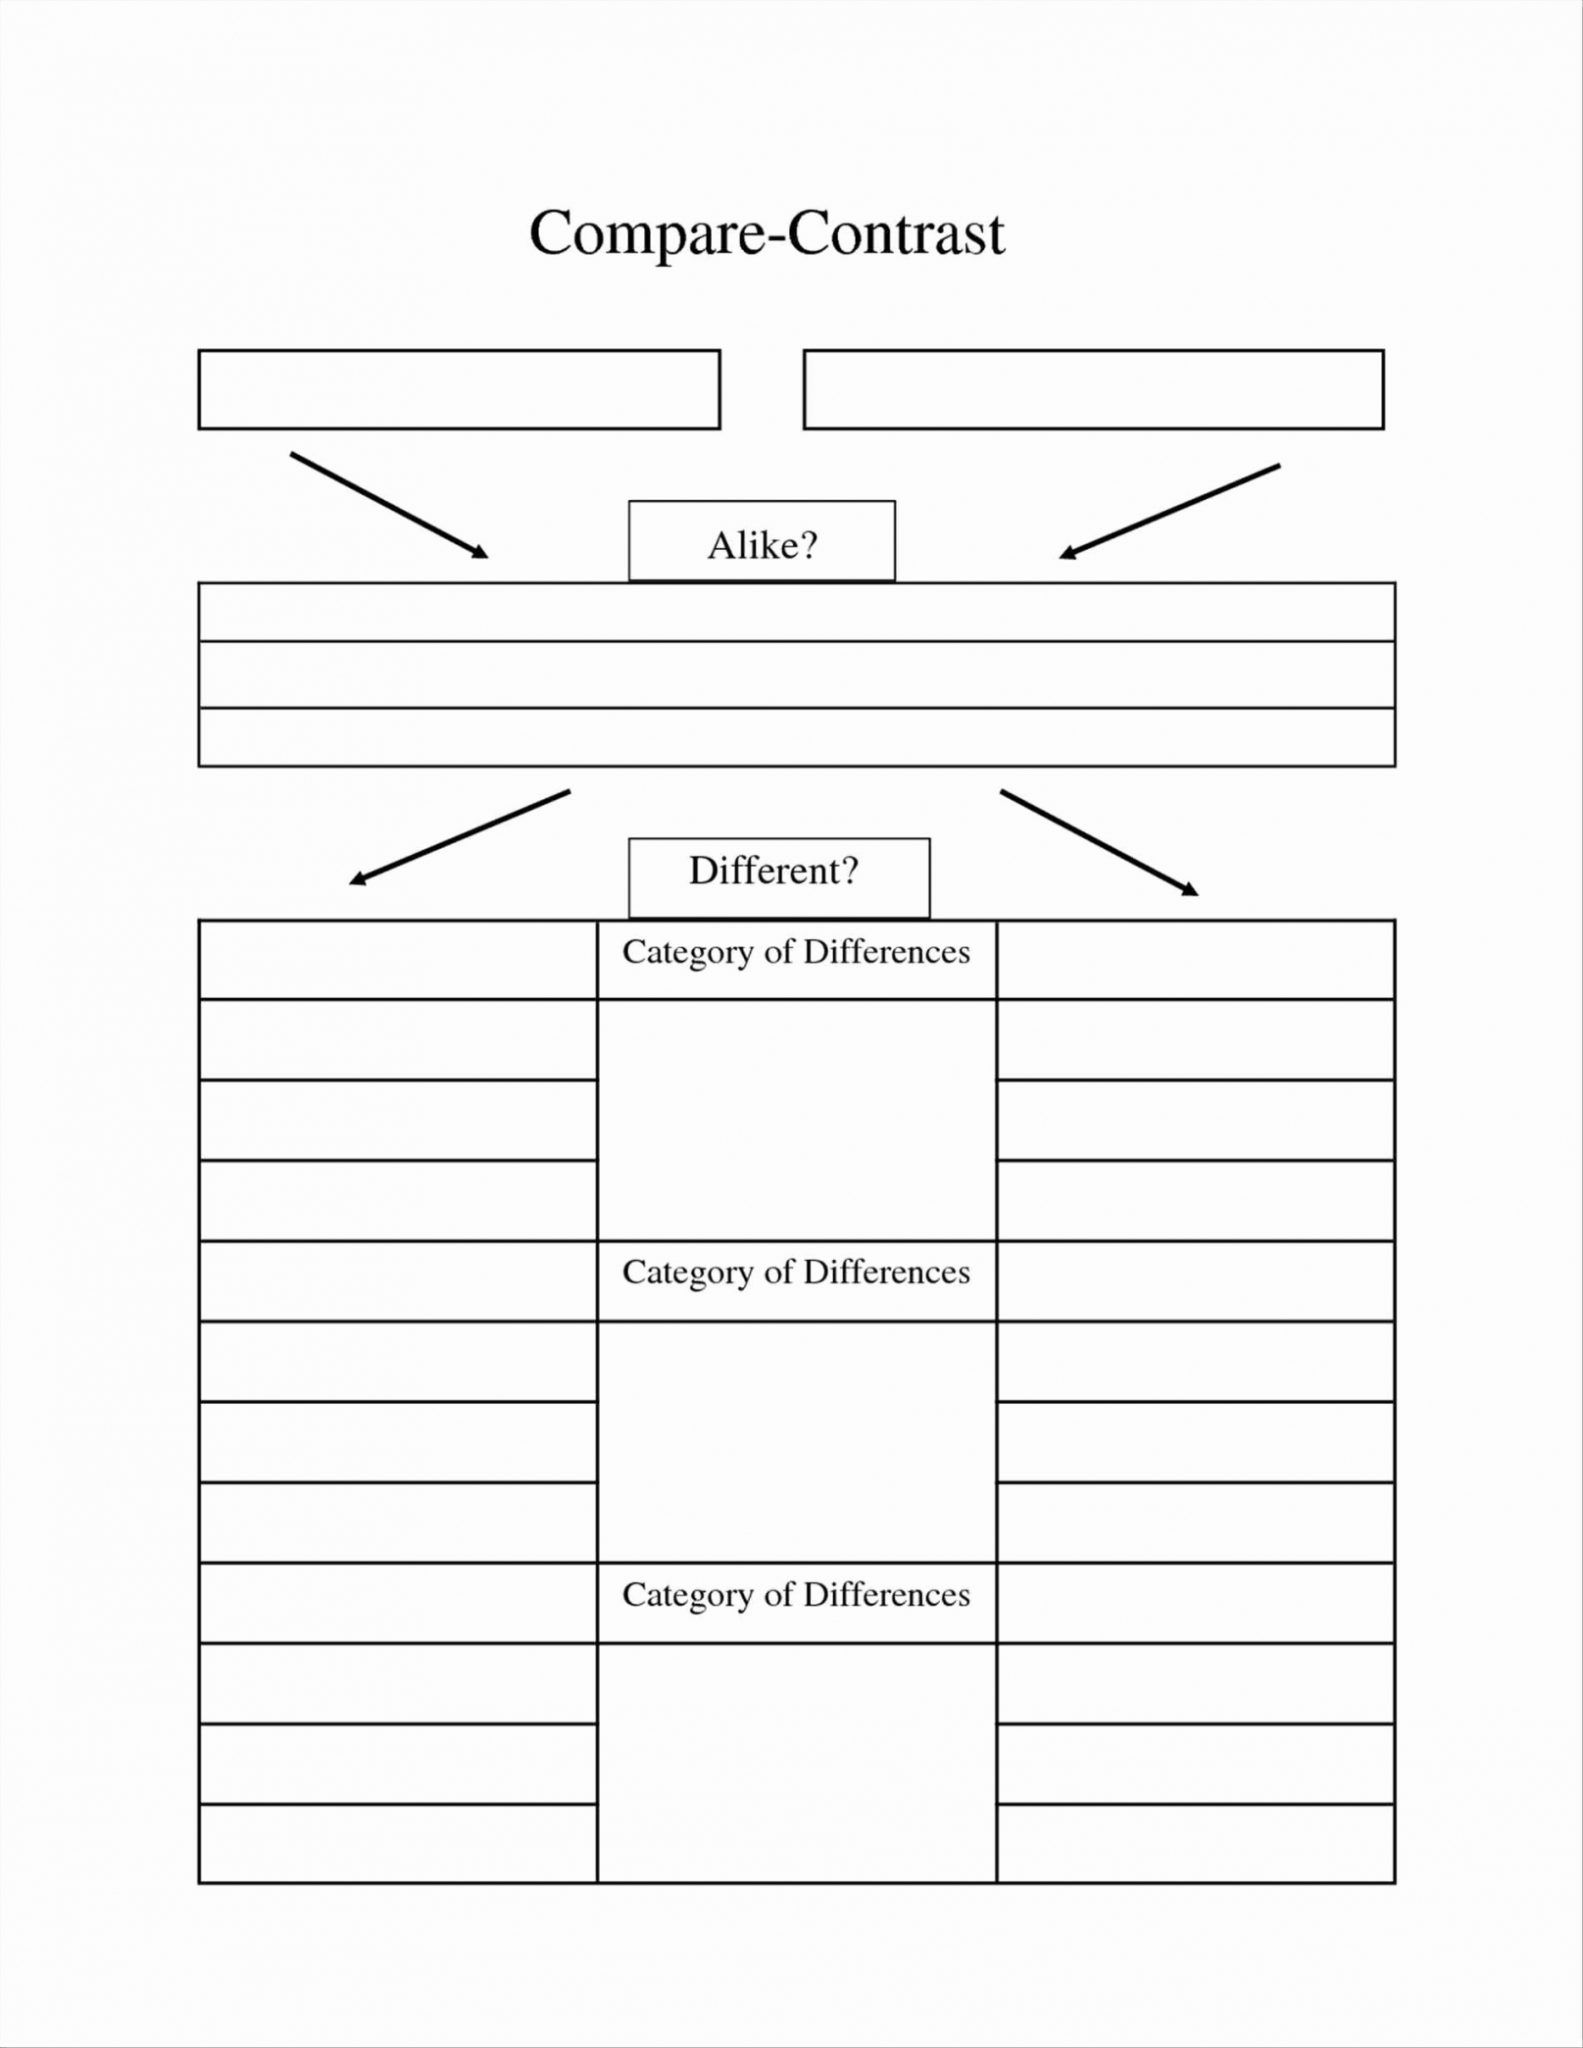 Budget Worksheet Excel Template With Images